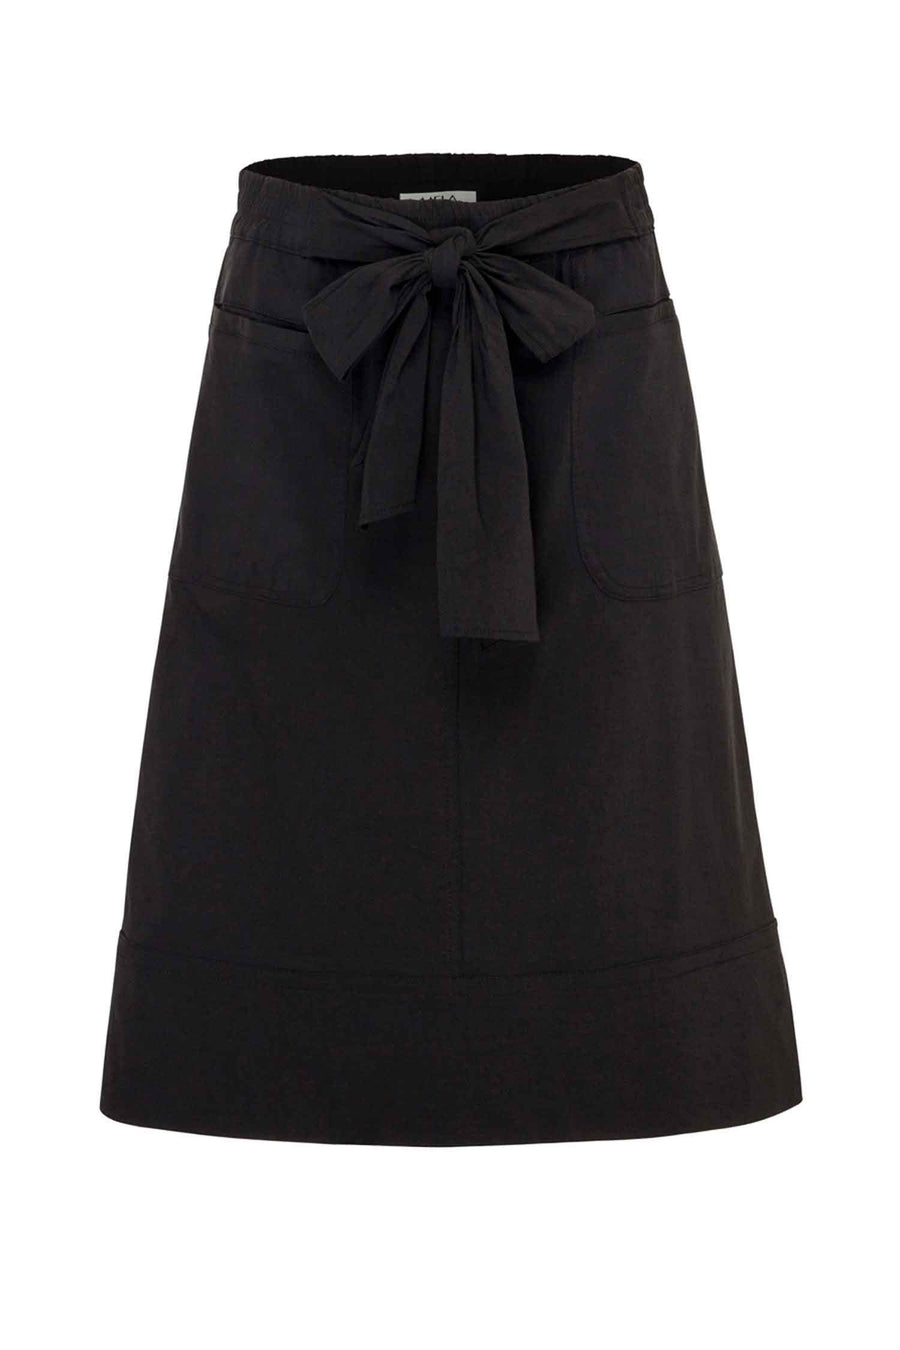 Tie Skirt  in Black